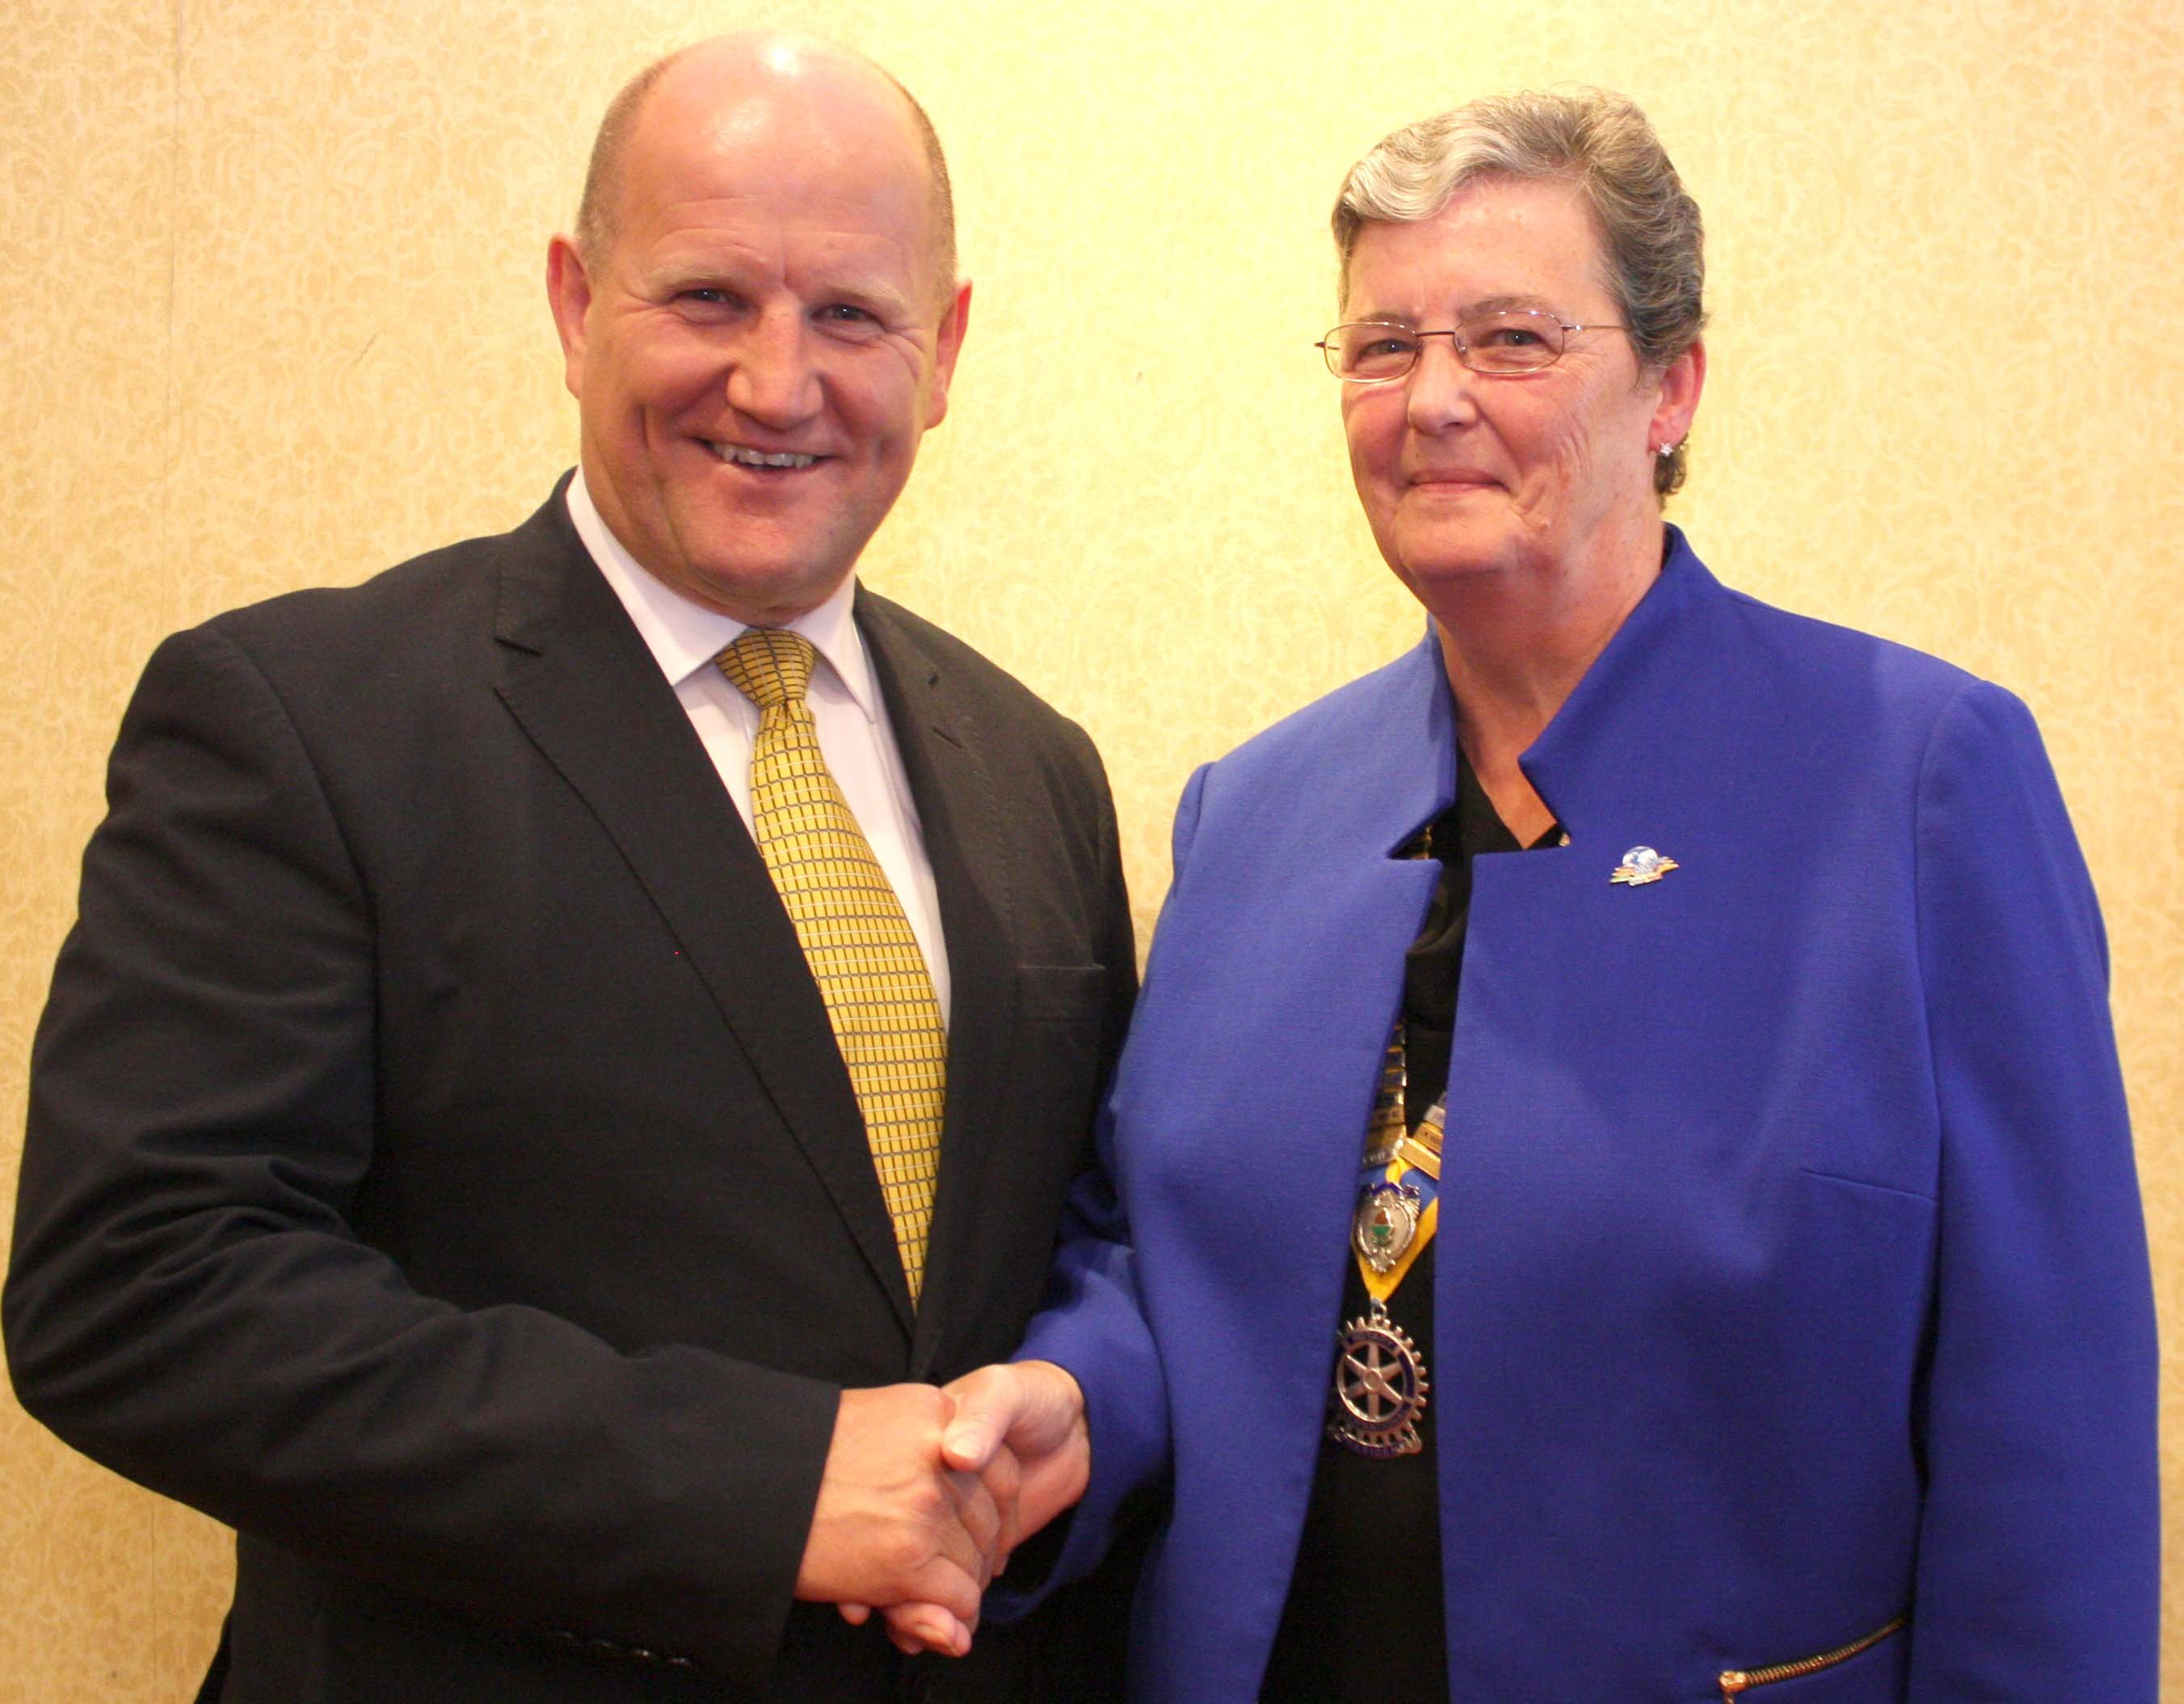 Chief Constable Talks to Rotary Club